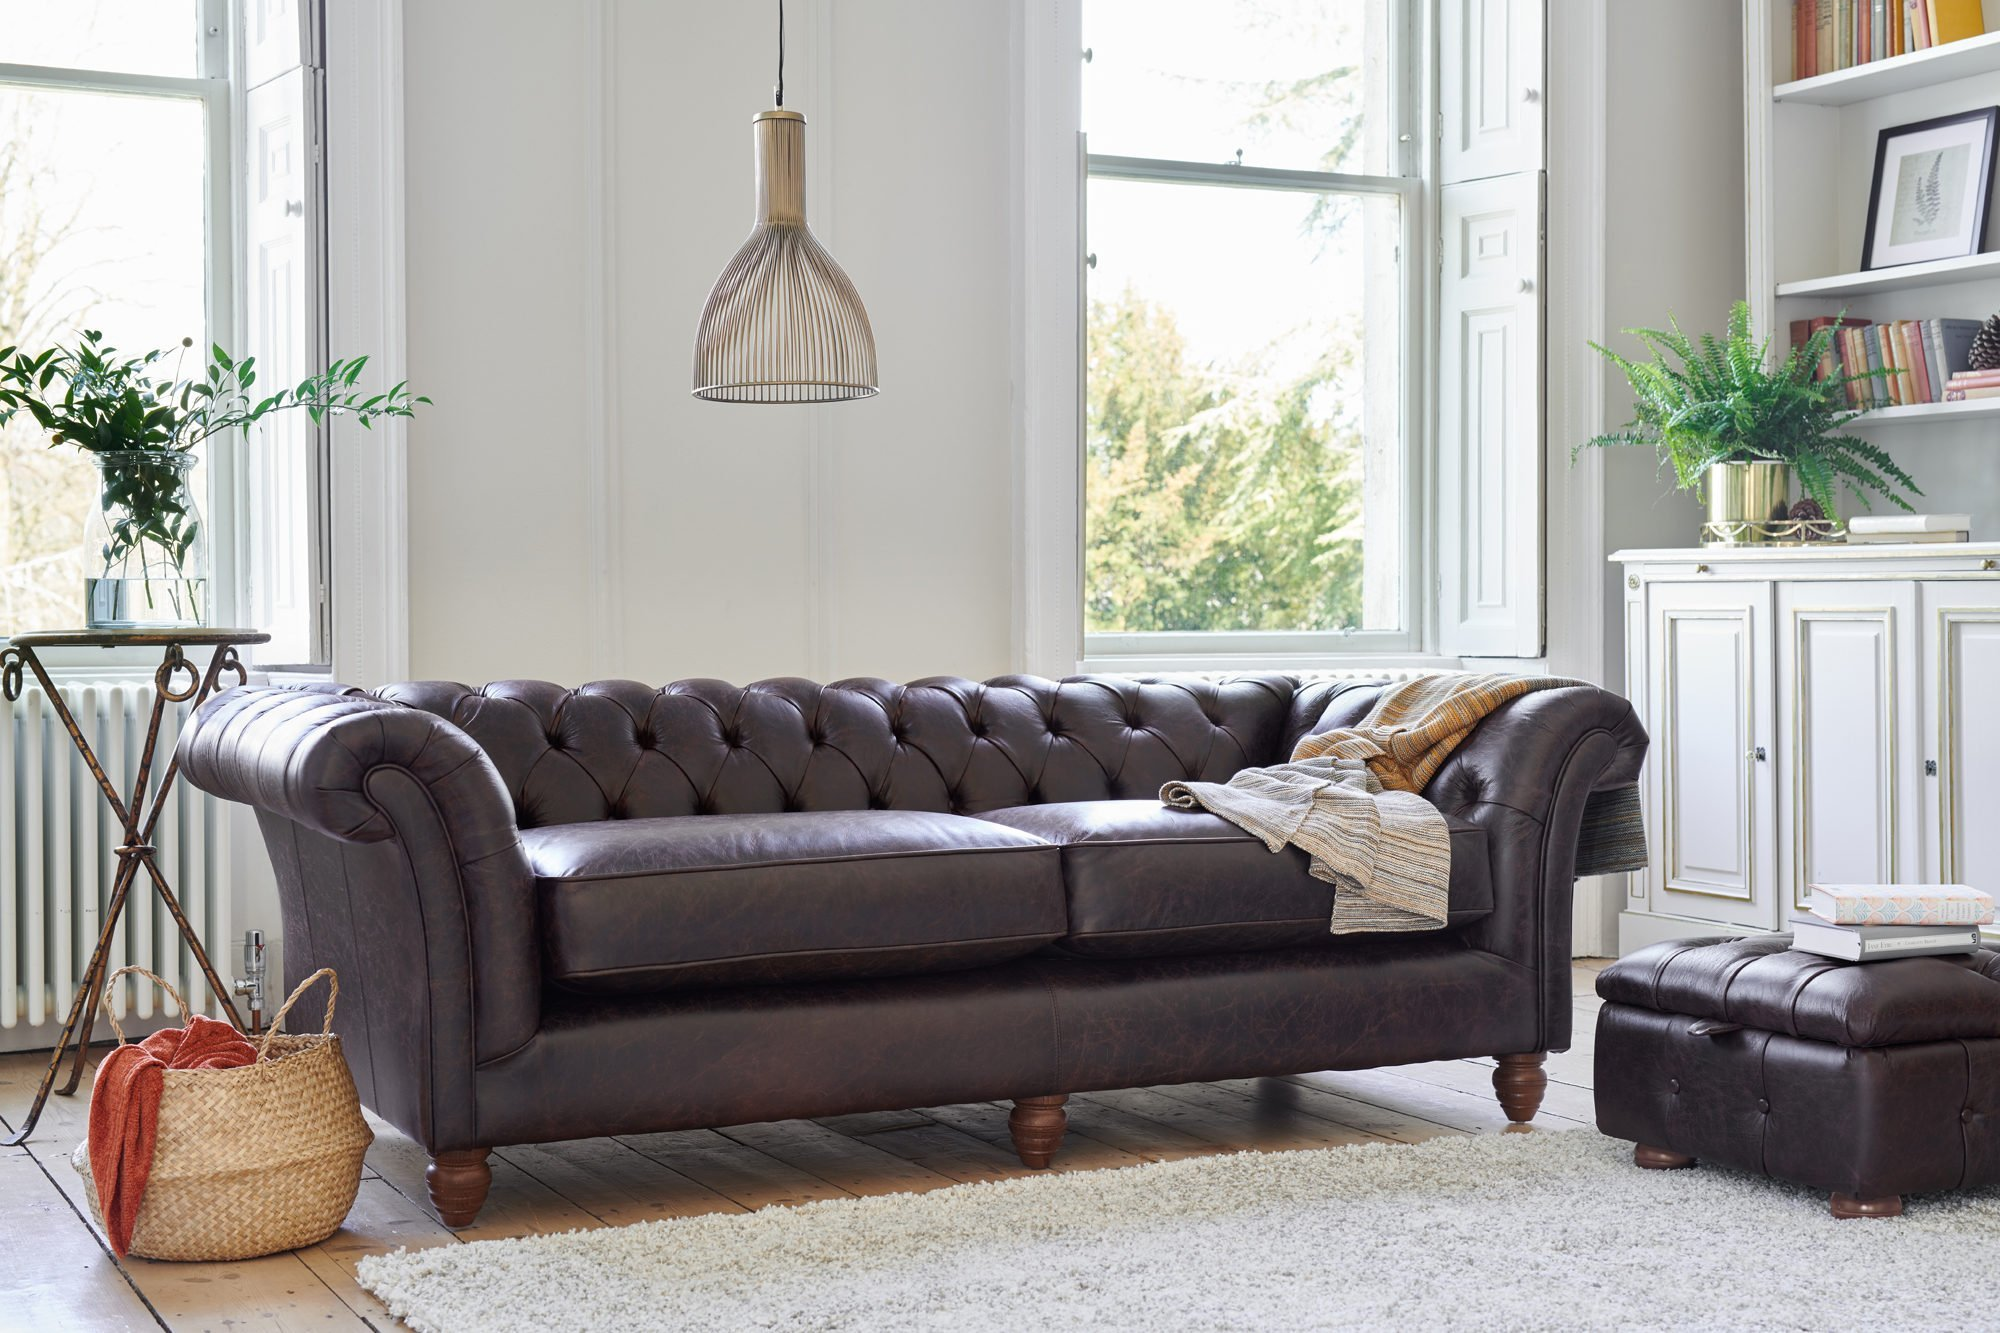 Sofa Uk Finance Make Paying For Your Chesterfield Leather Sofa Easy Thomas Lloyd